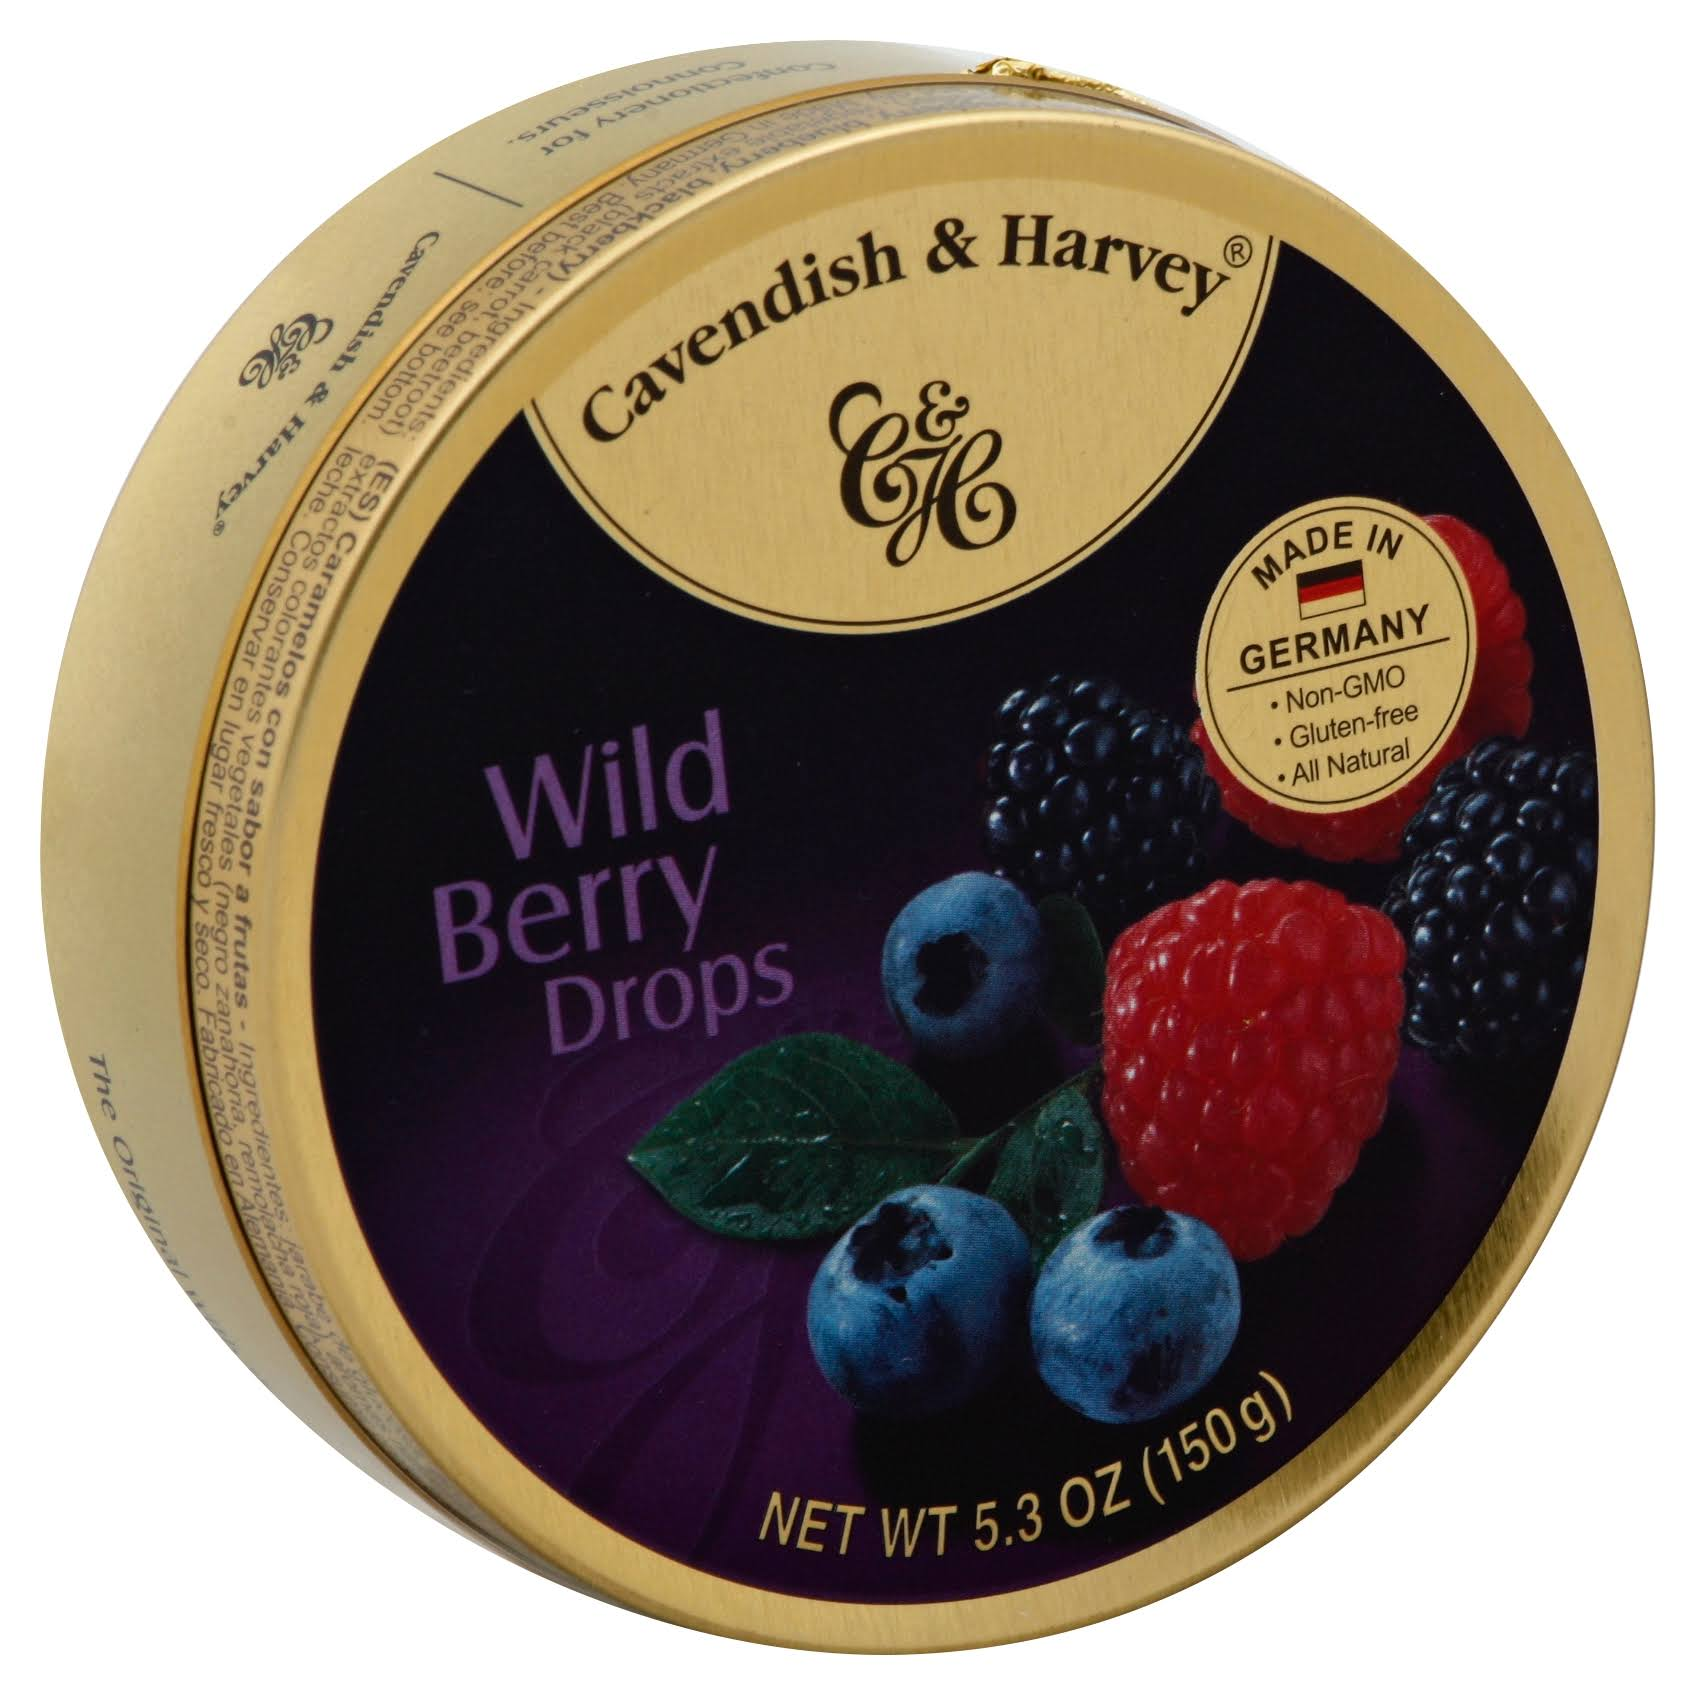 Cavendish & Harvey Drops - Wild Berry, 150g